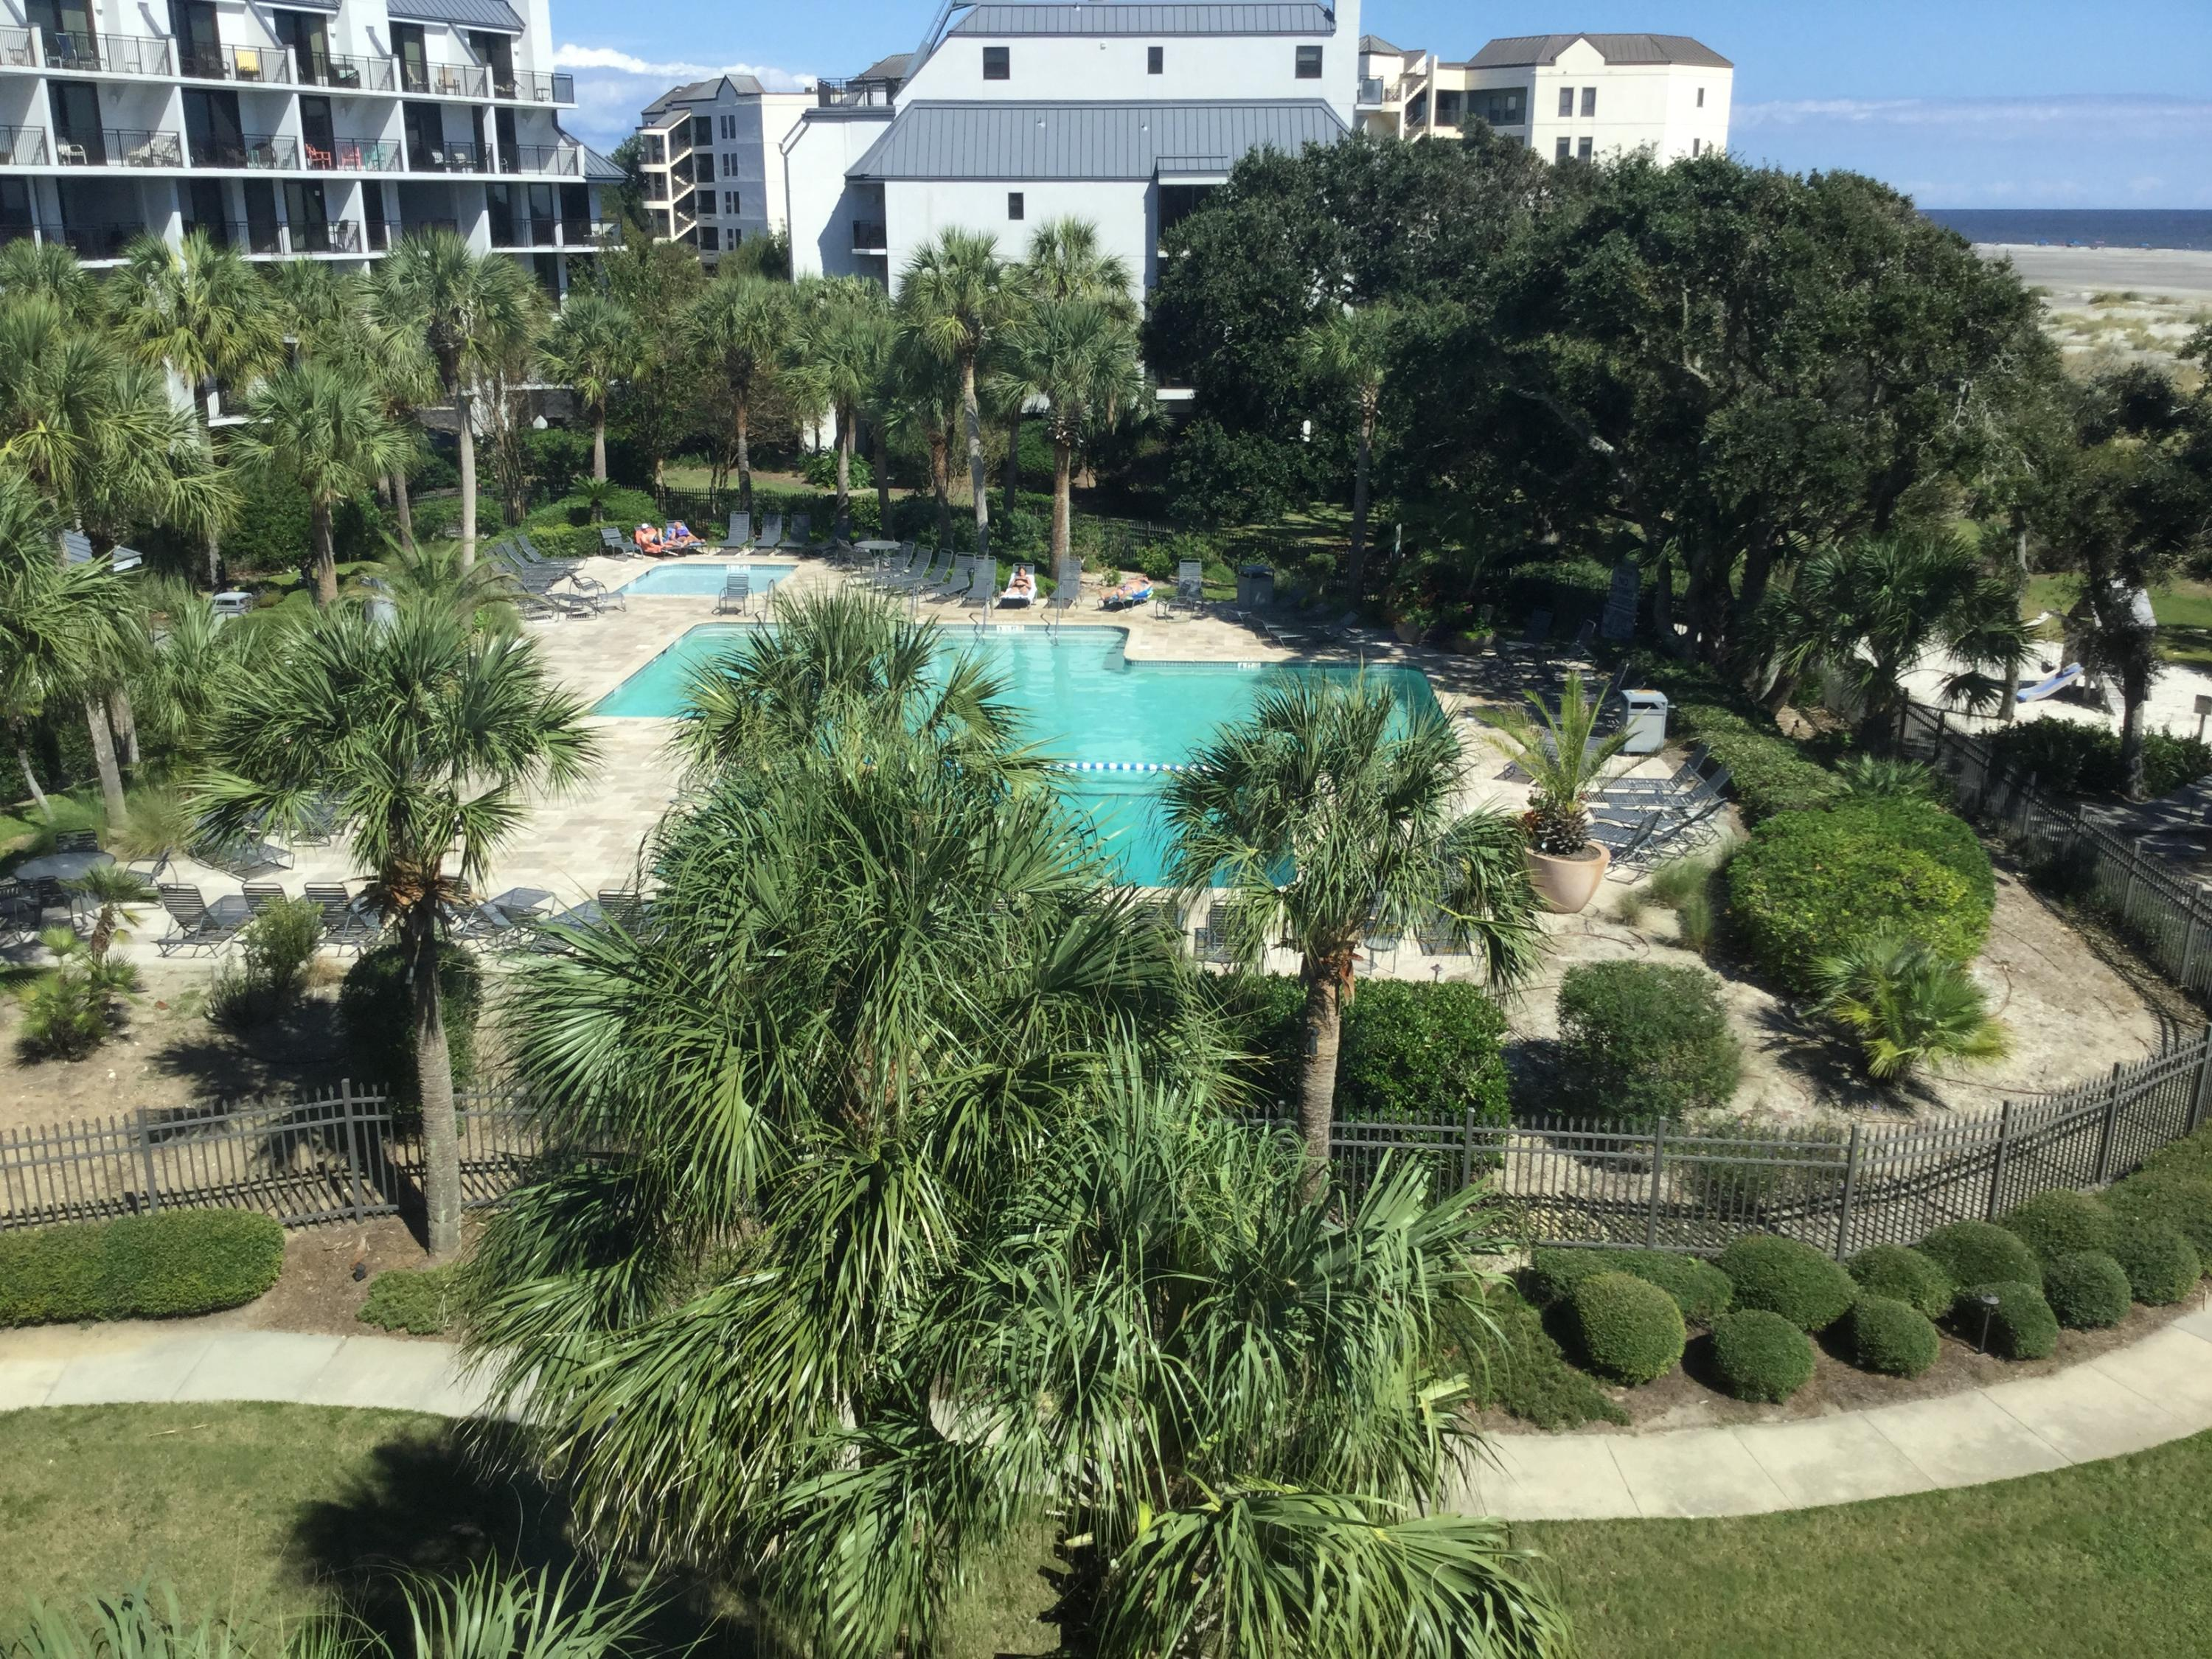 301 A Shipwatch Villa (share 1) Isle Of Palms, SC 29451